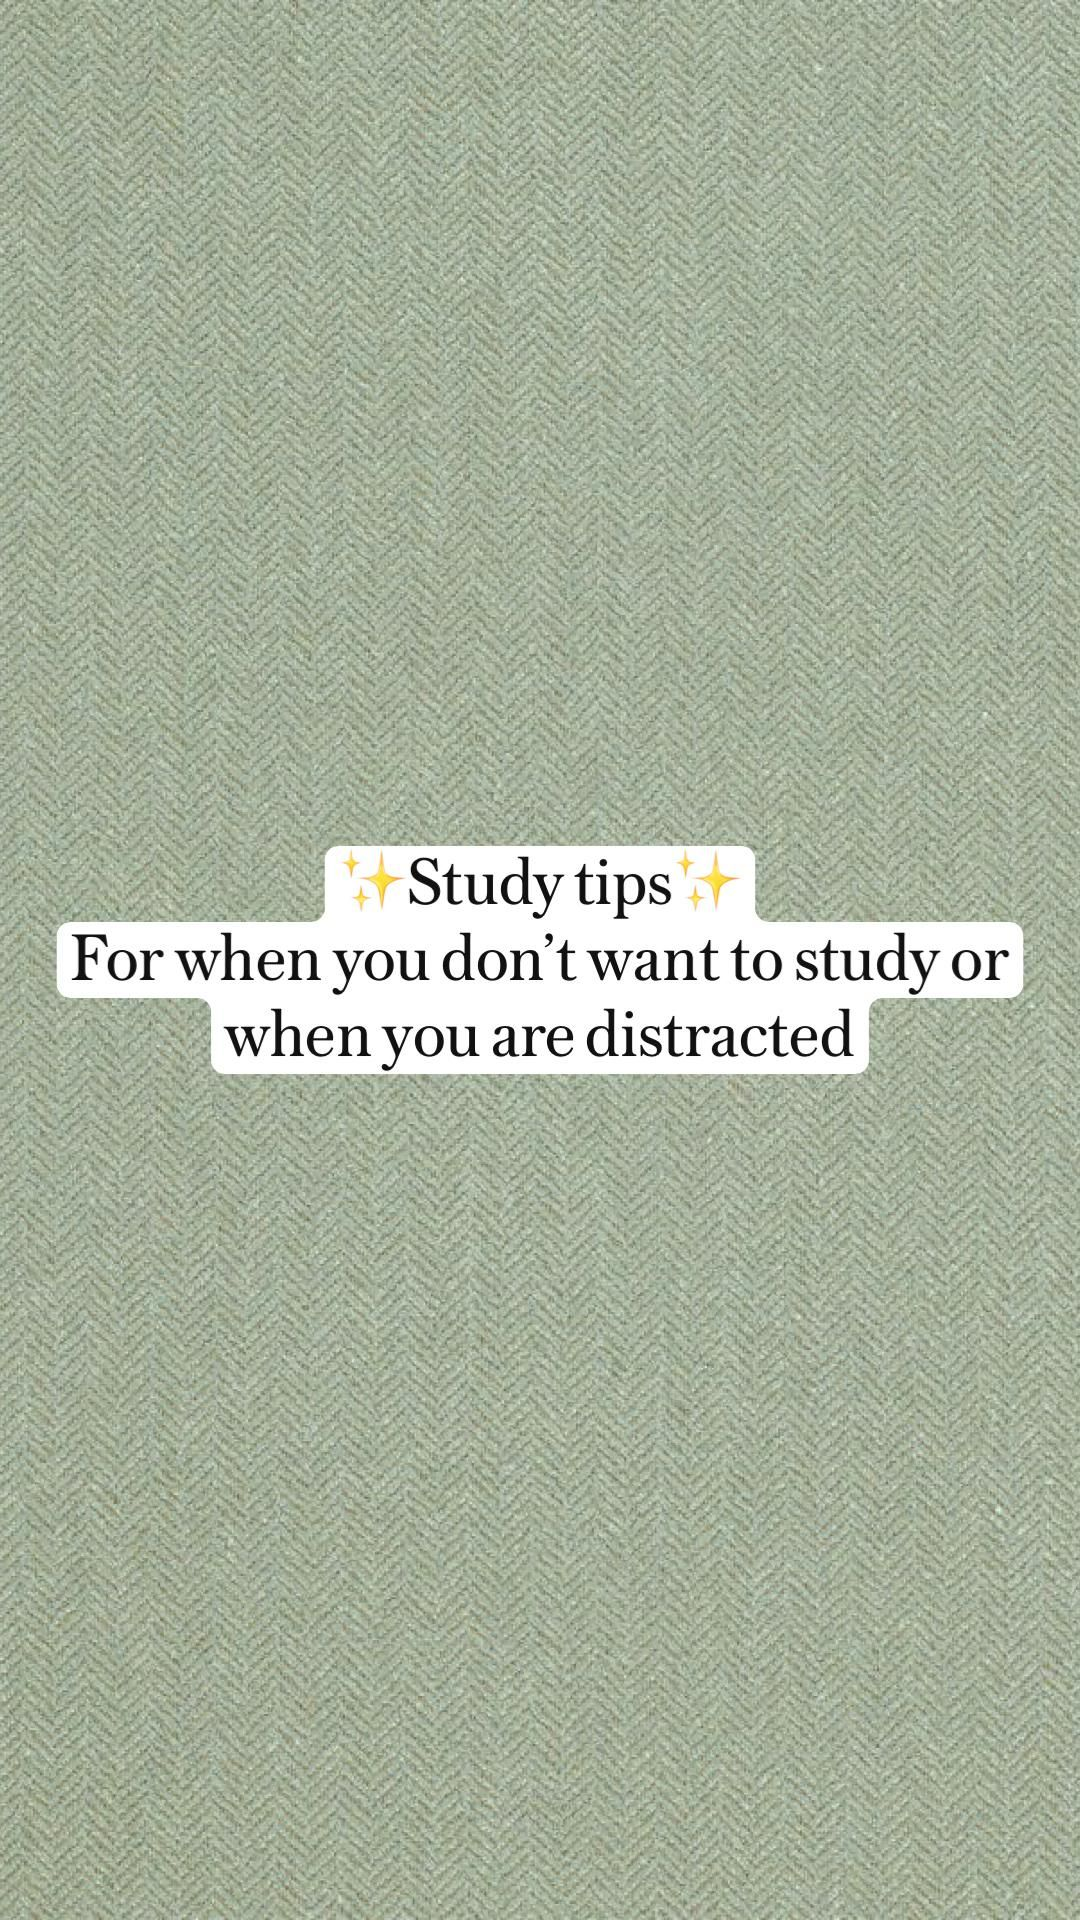 ✨Study tips✨ For when you don't want to study or when you are distracted